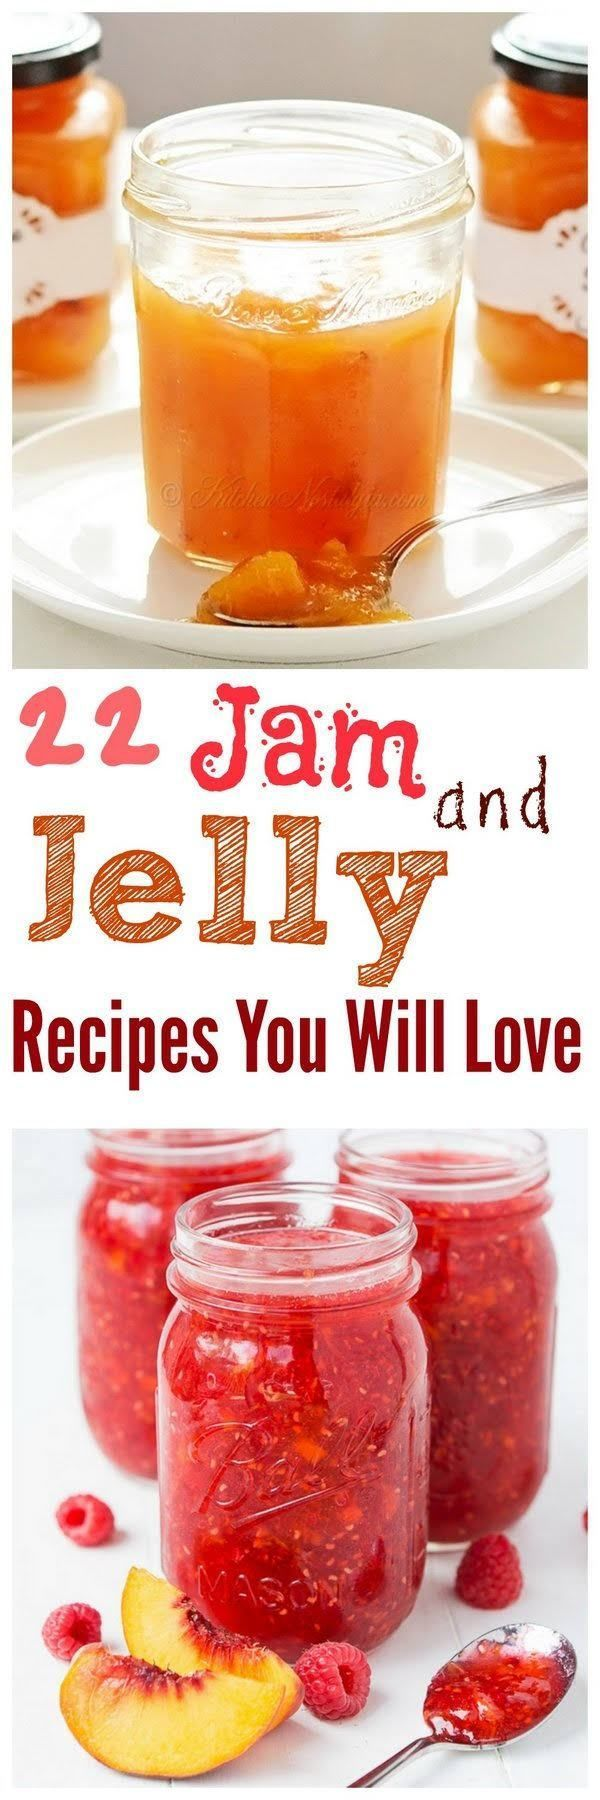 22 Jam and Jelly Recipes You Will Love. What a good reference to have. Has someone ever shared fruits with you and you had no clue how to preserve them. Well here is a resource at your finger tips.#affiliatelink